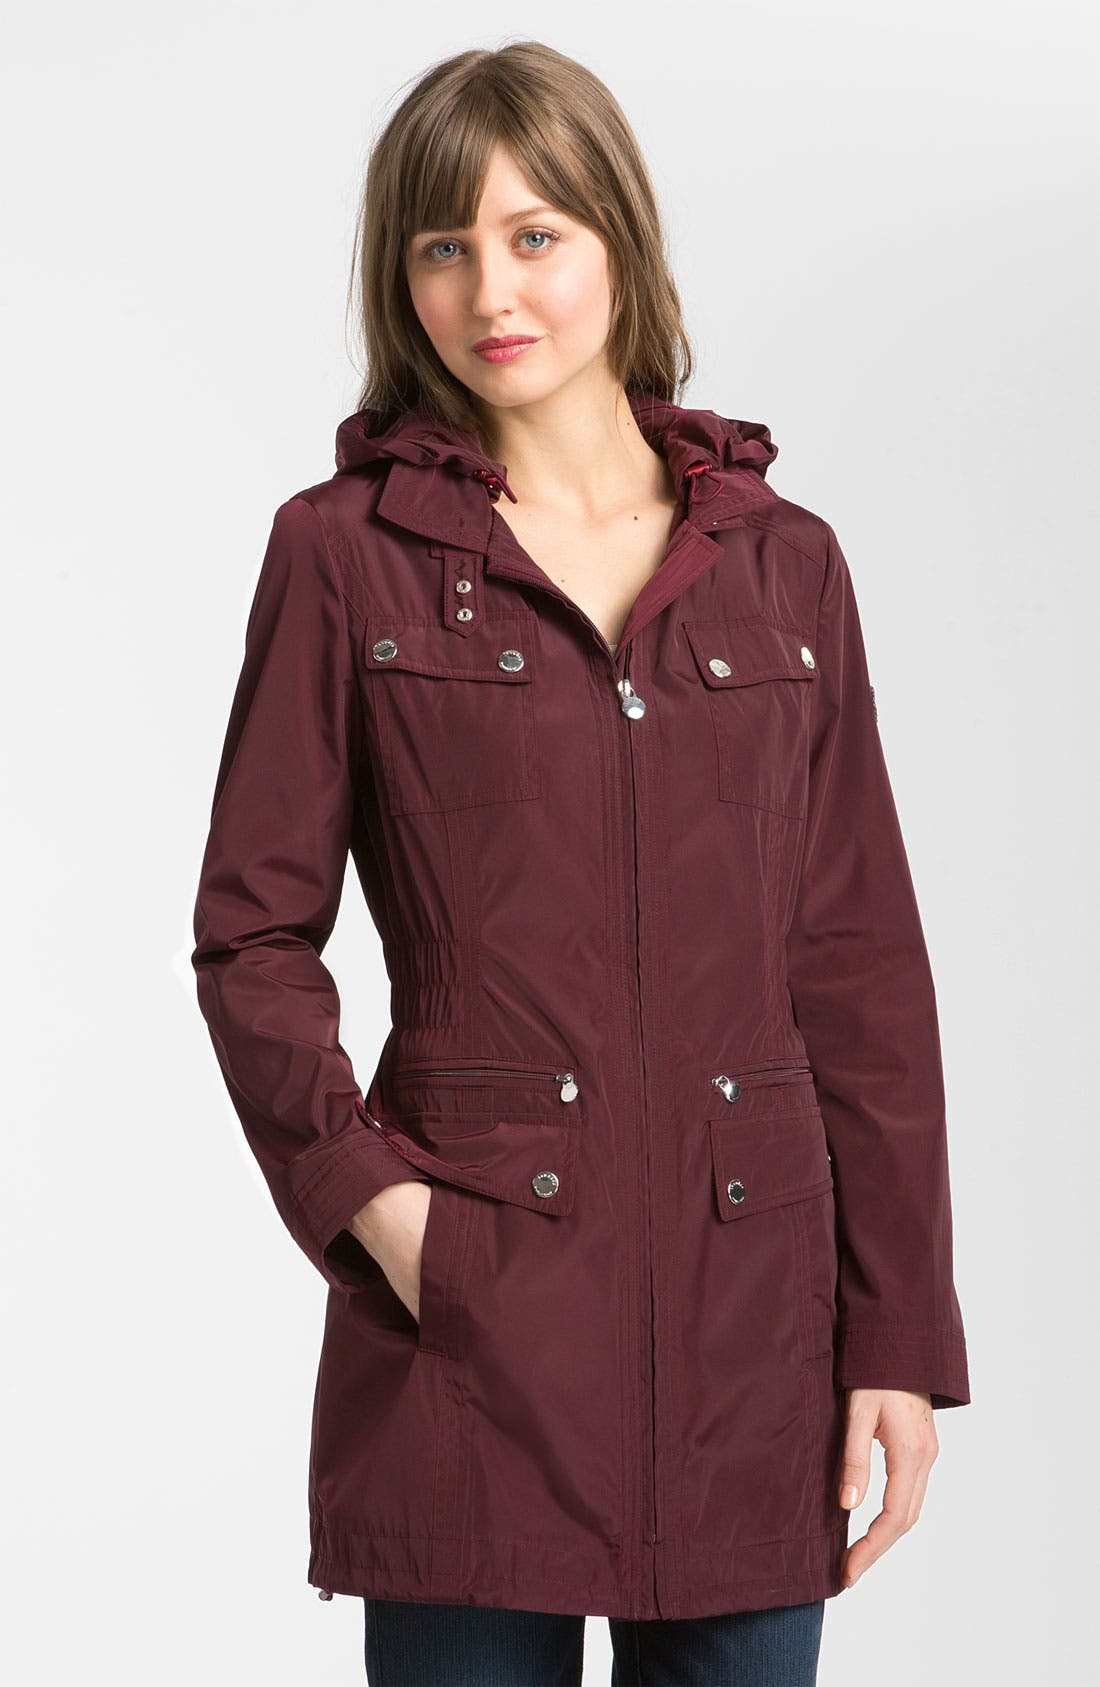 Alternate Image 1 Selected - Laundry by Shelli Segal Packable Anorak